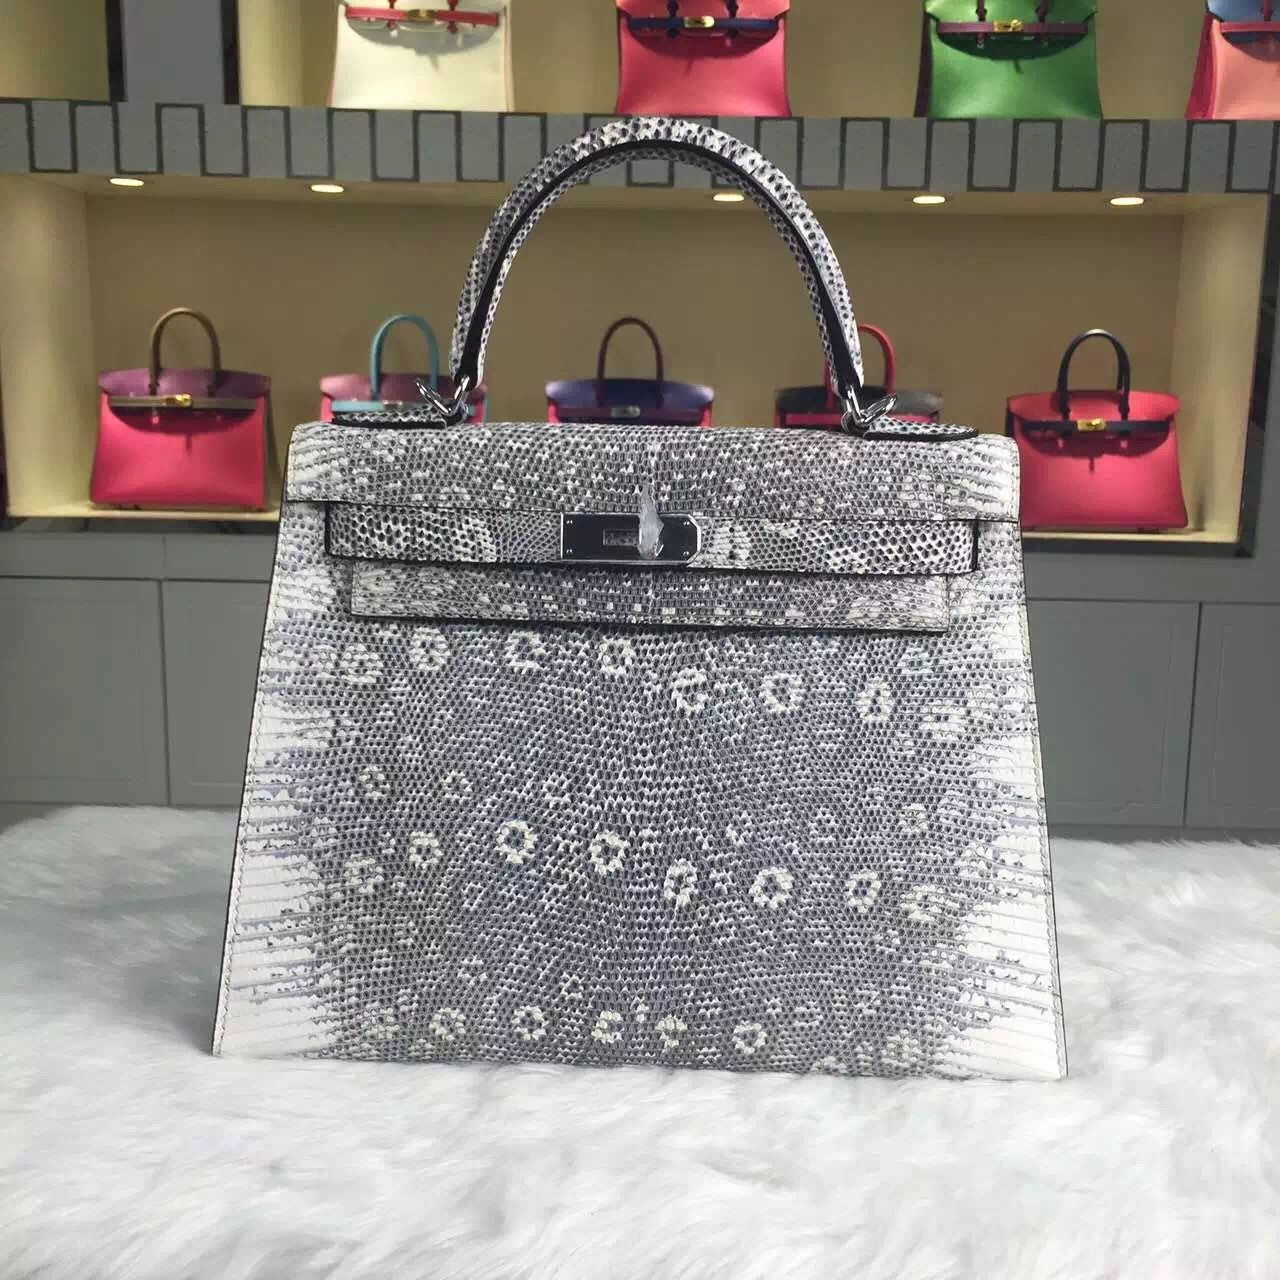 cdac21b60 Brand: Hermes; Style: Kelly Bag28CM ; Material: Lizard Skin Leather;Color:  Original Color; Hardware: gold/silver; Accessories: Padlock and keys, dust  bag.